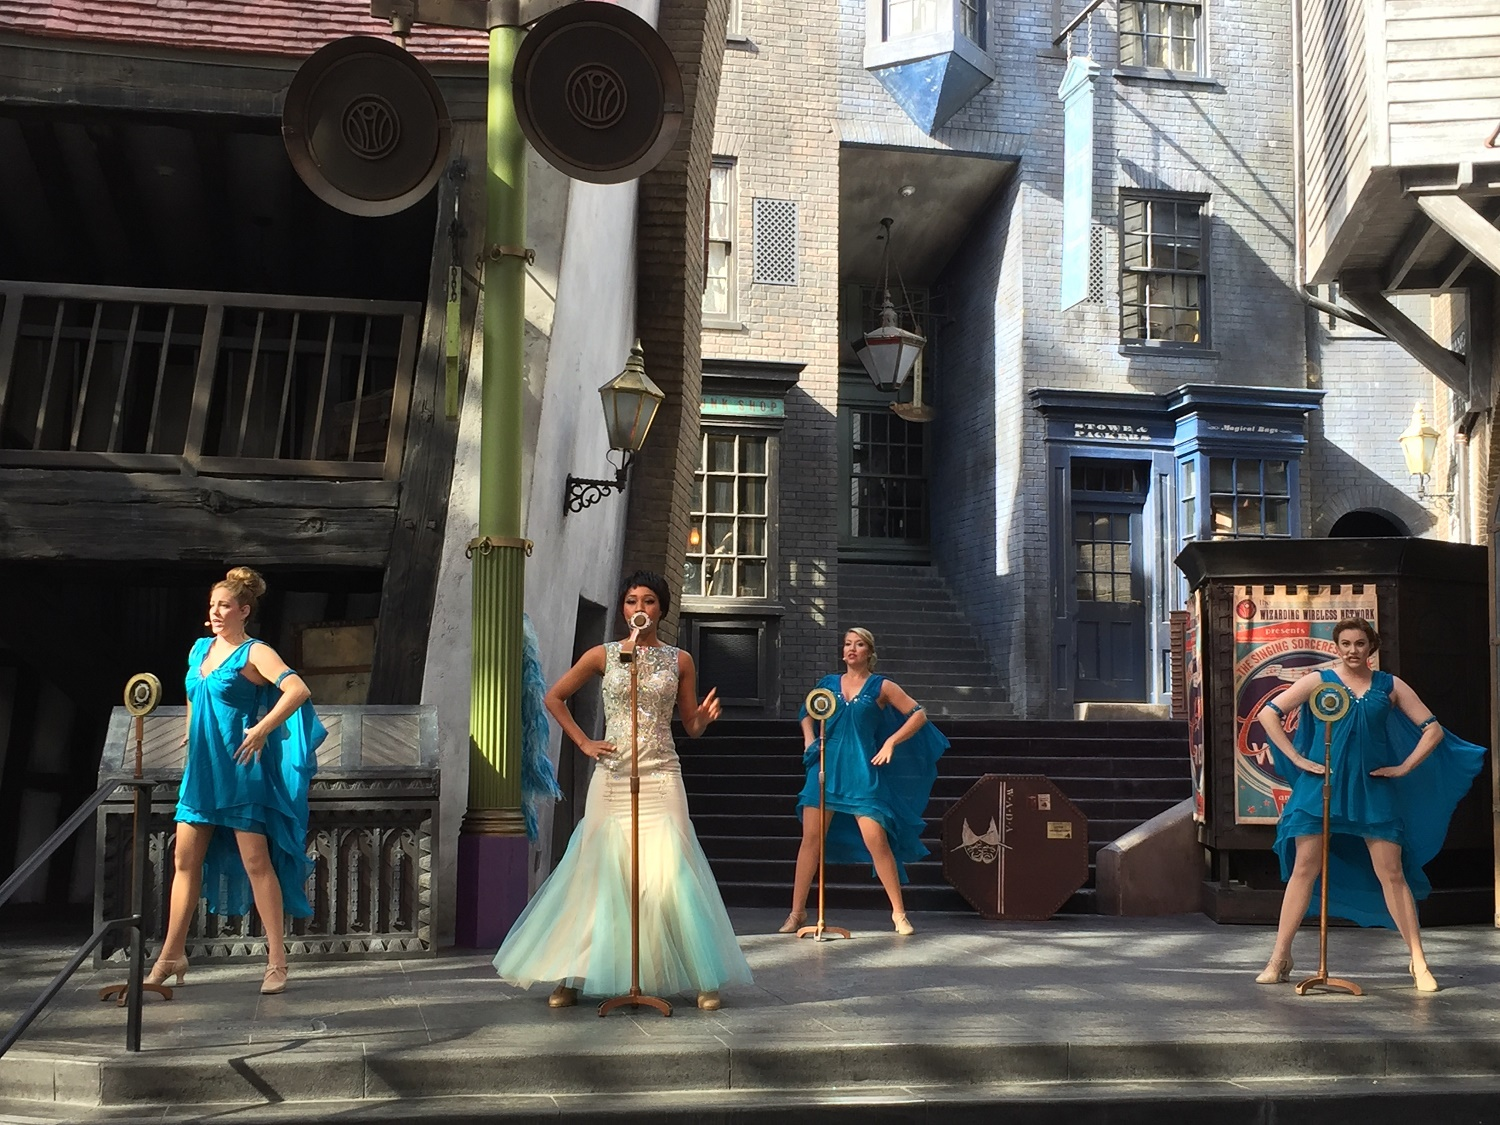 Celestina Warbeck and the Banshees perform jazzy Wizarding World themed songs on an outdoor stage in Diagon Alley.